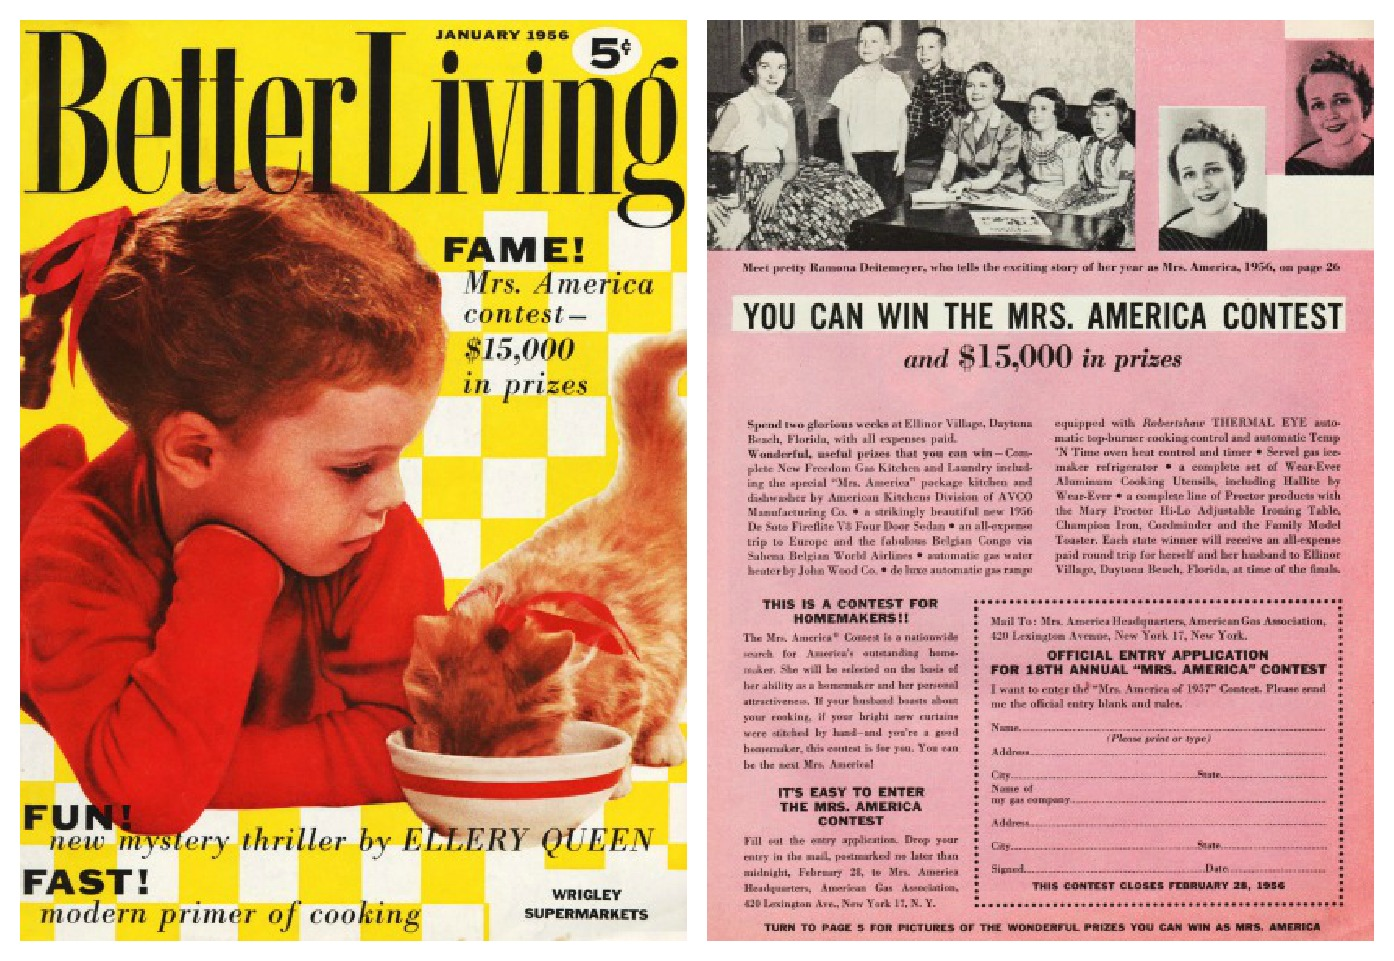 american dream in the 1960s The american dream of the 1930s had been focused on working hard, men provided for their families, and hope to rise above the depression.